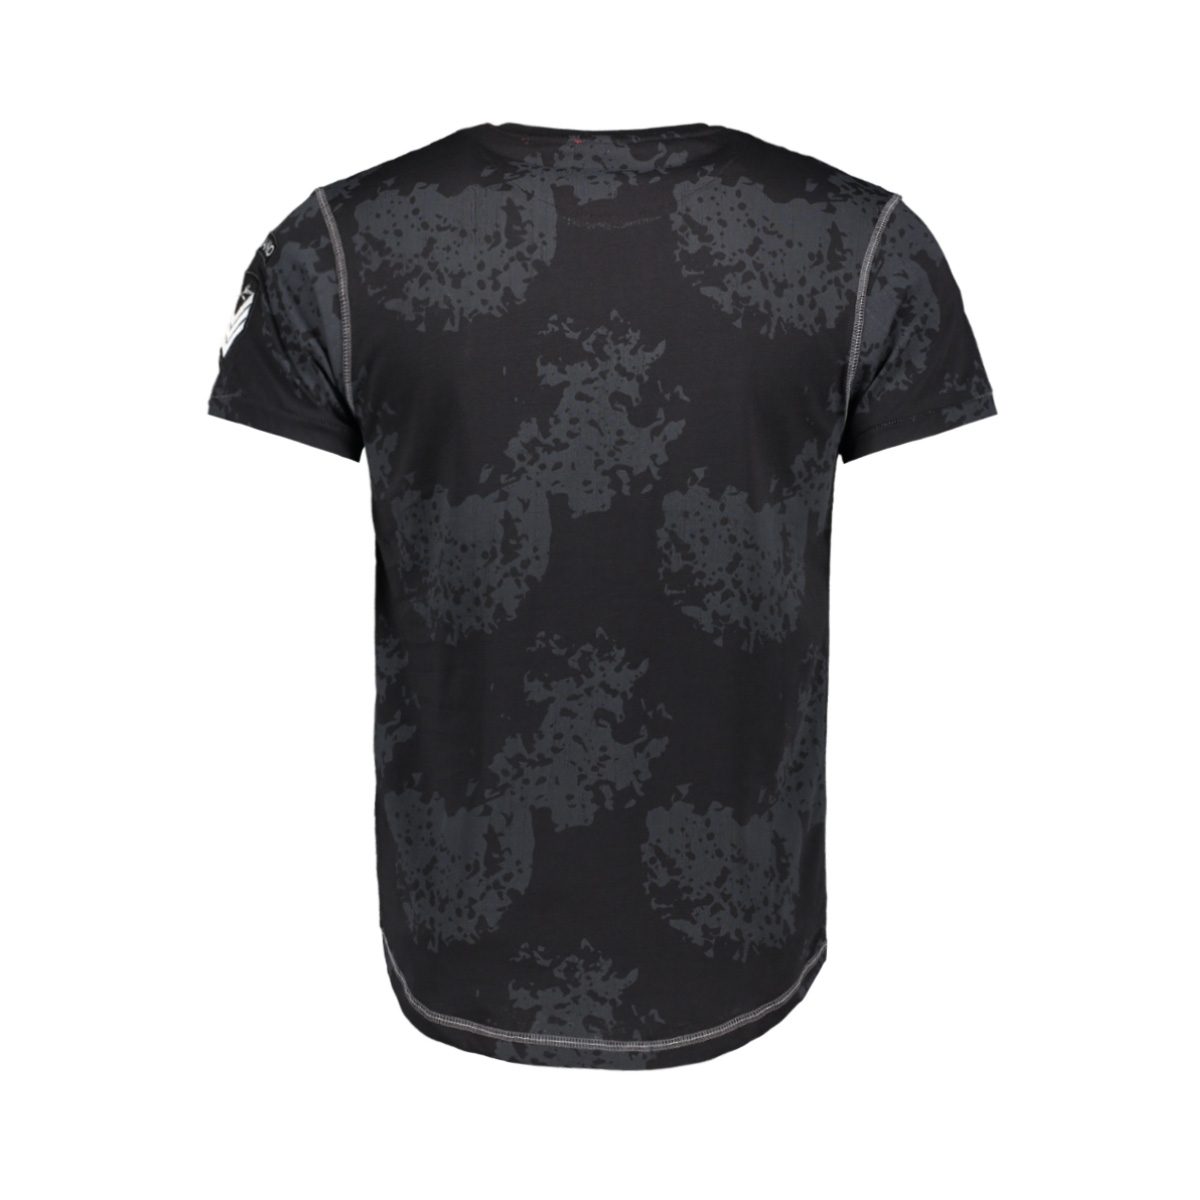 t shirt 13829 gabbiano t-shirt black